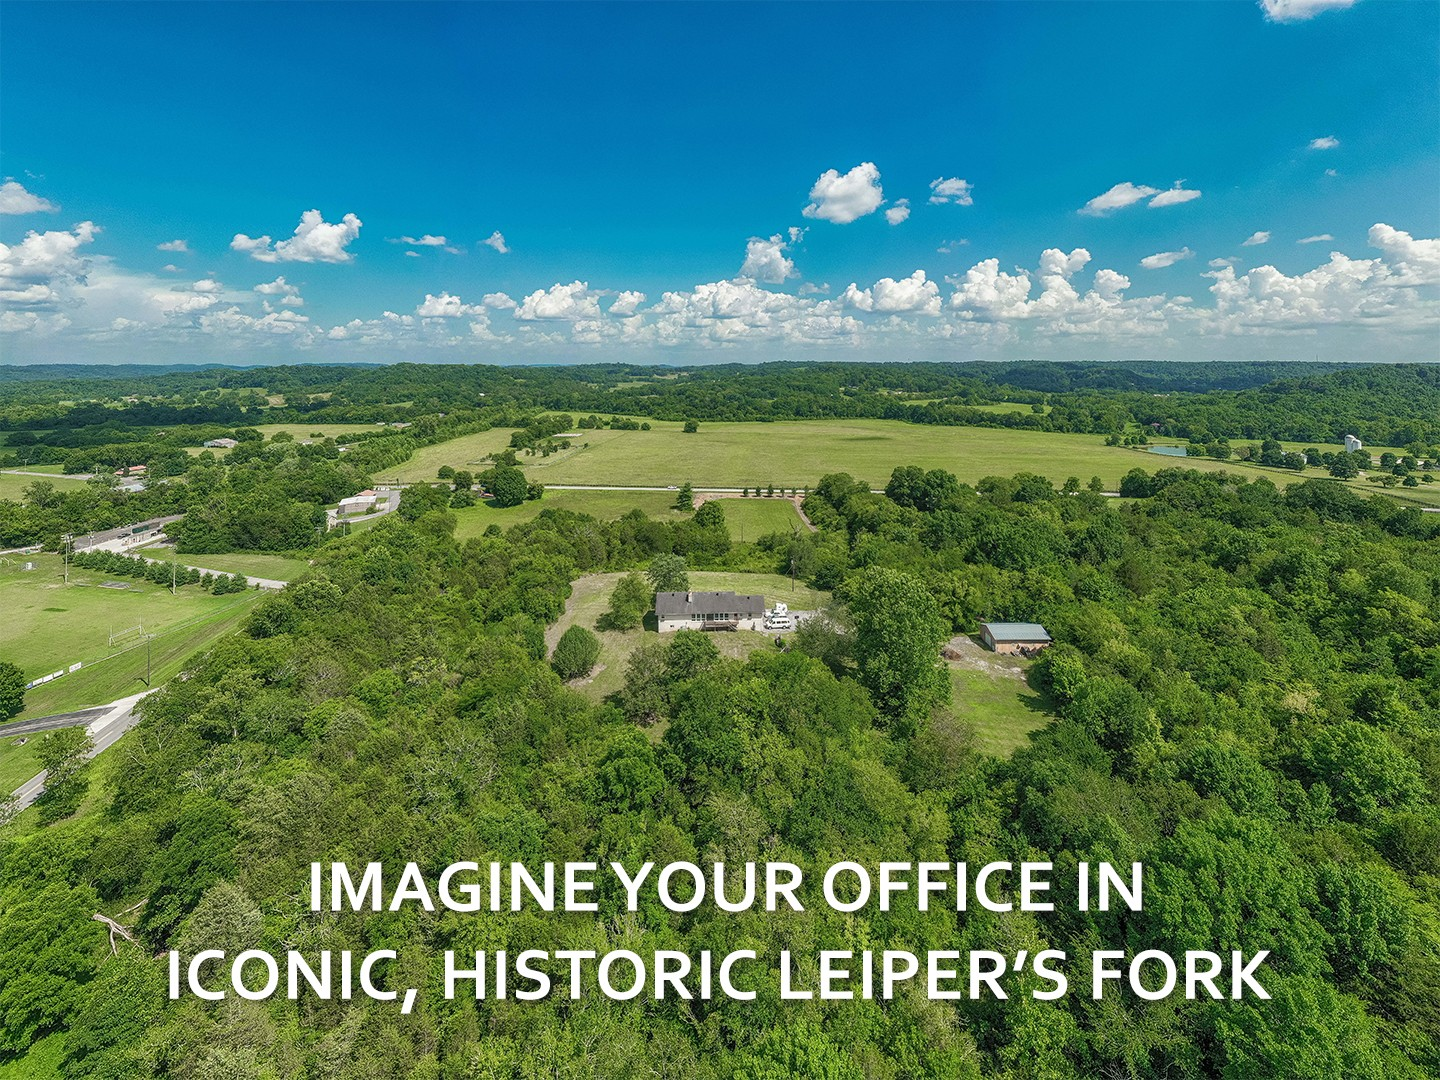 Picture your company in this spectacular location where sunrises and sunsets add priceless value to your work! A retreat from the rat race, in iconic Leipers Fork, yet only an hour from downtown Nashville and the airport. Zoned for 22 employees, BREATHTAKING VIEWS, close to Pucketts and the village. 10 acres surrounded by protected green space and the Natchez Trace Parkway.